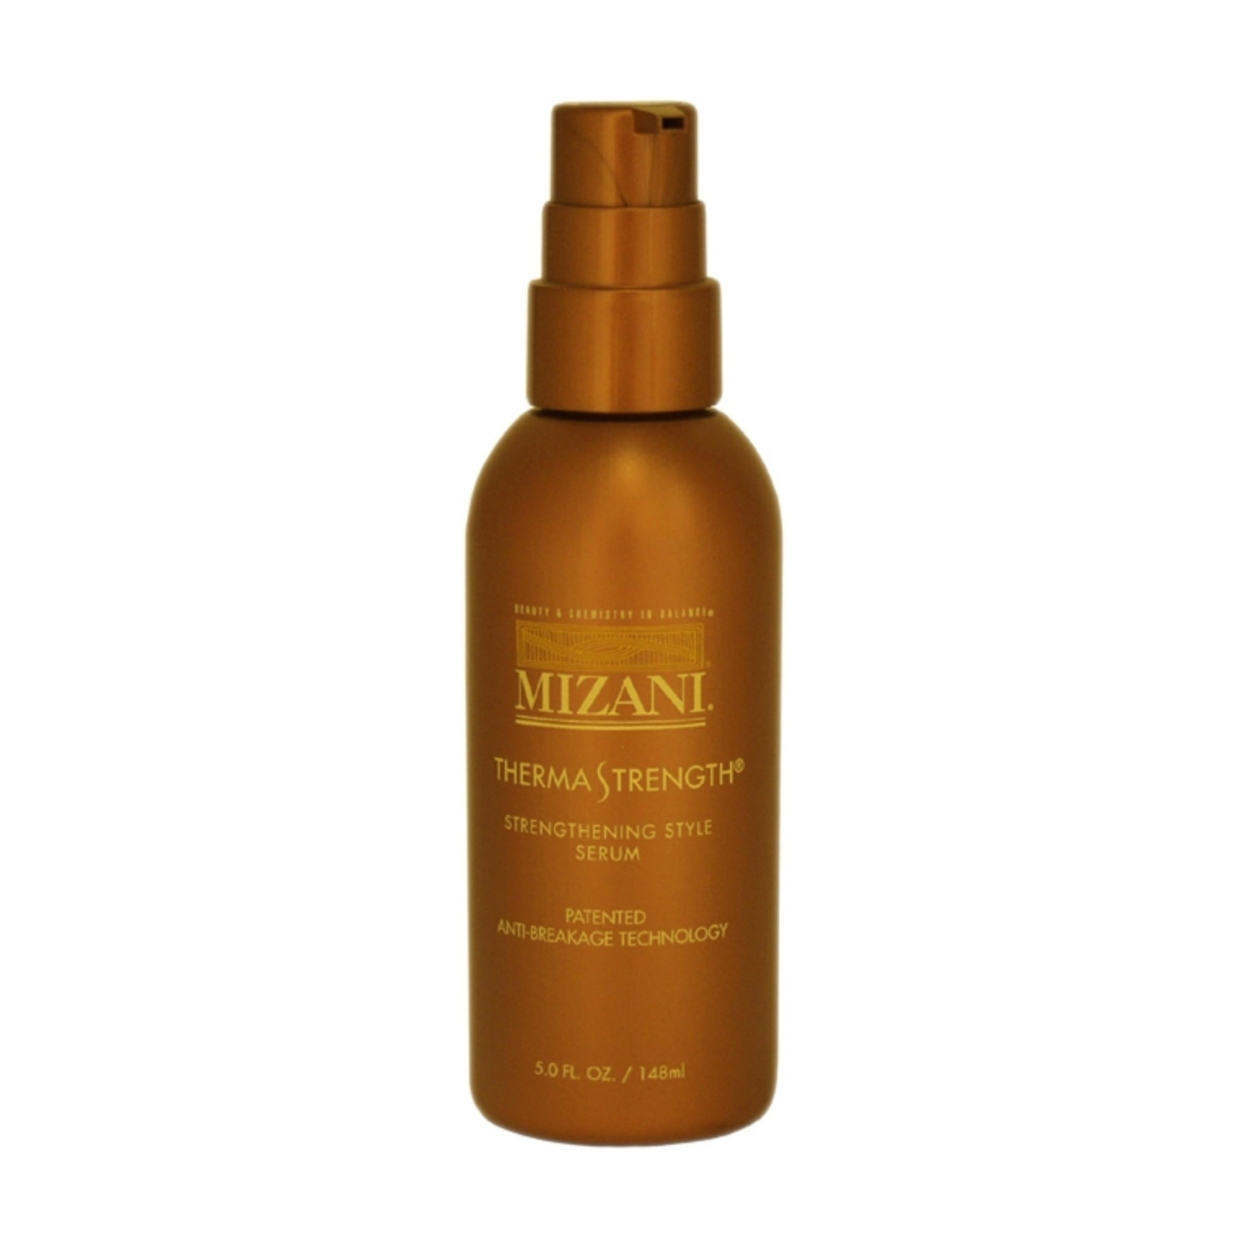 Therma Strength Style Serum by Mizani for Unisex - 5 oz Serum 58545f7ce2246110a14bea9d